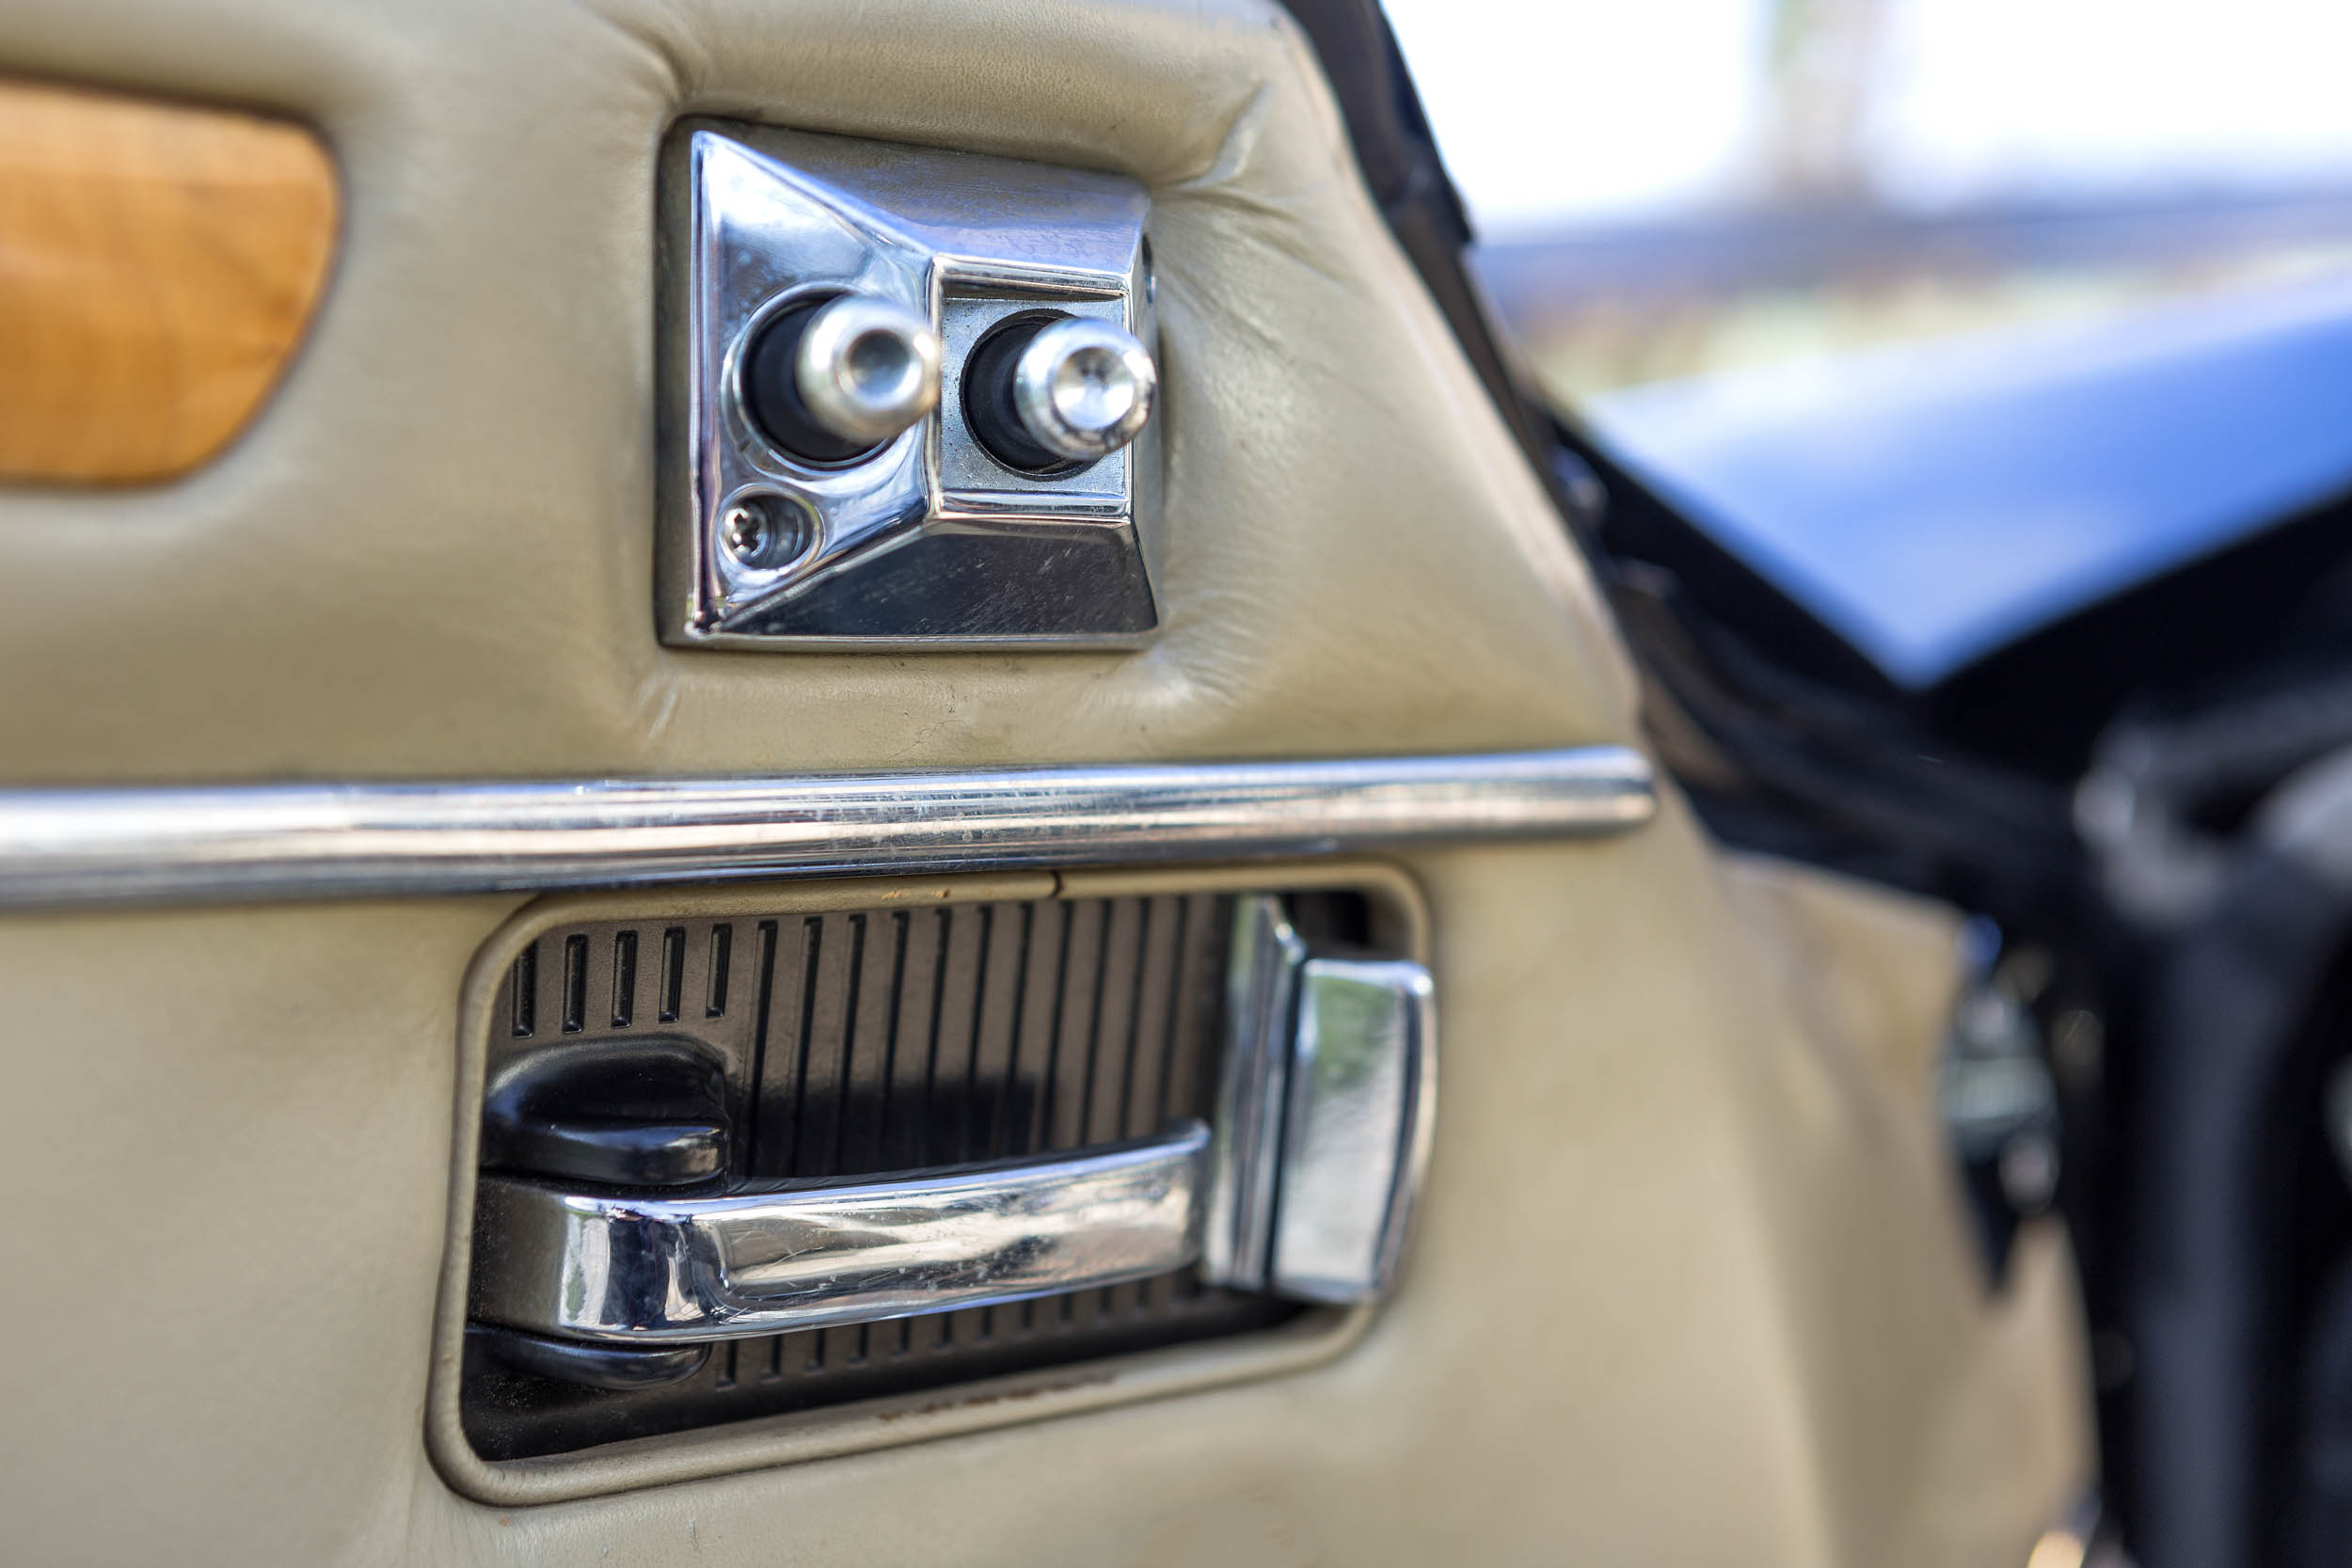 1984 Jaguar XJ-S door detail